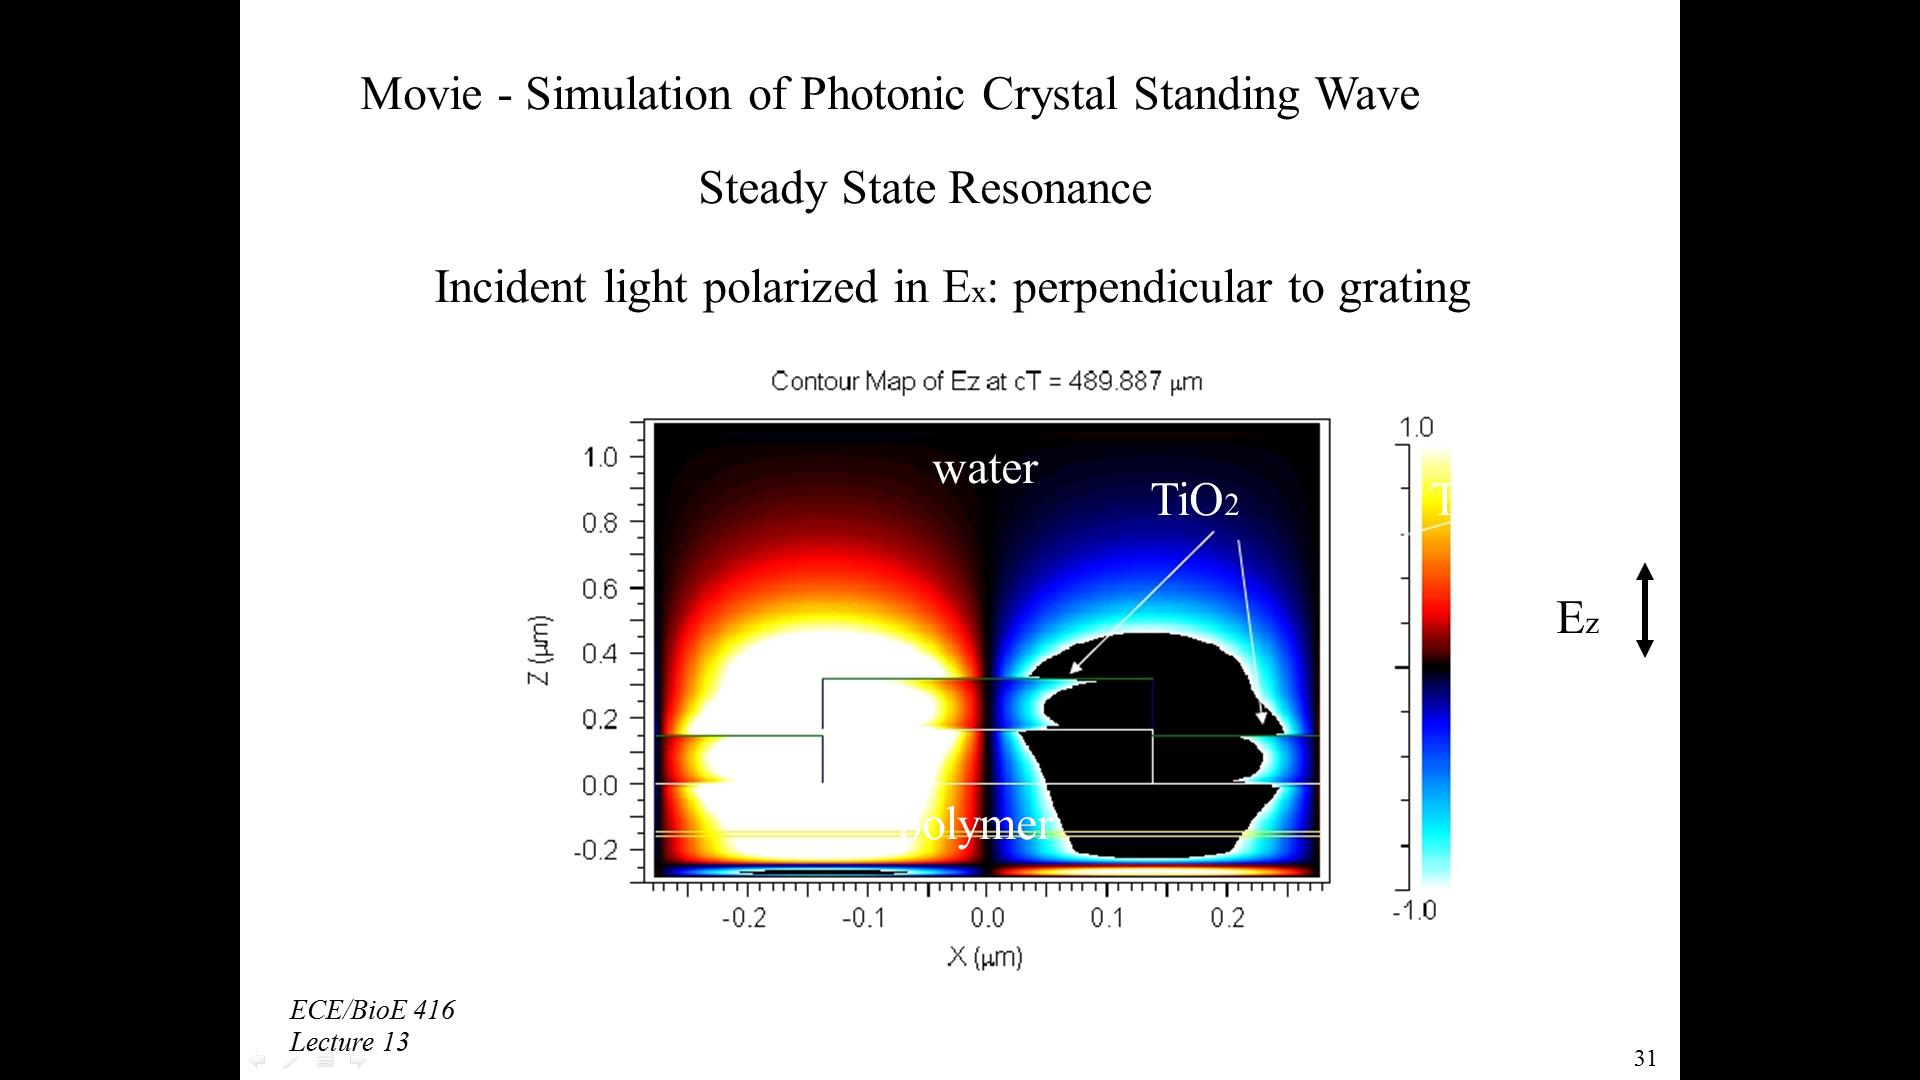 Movie - Simulation of Photonic Crystal Standing Wave